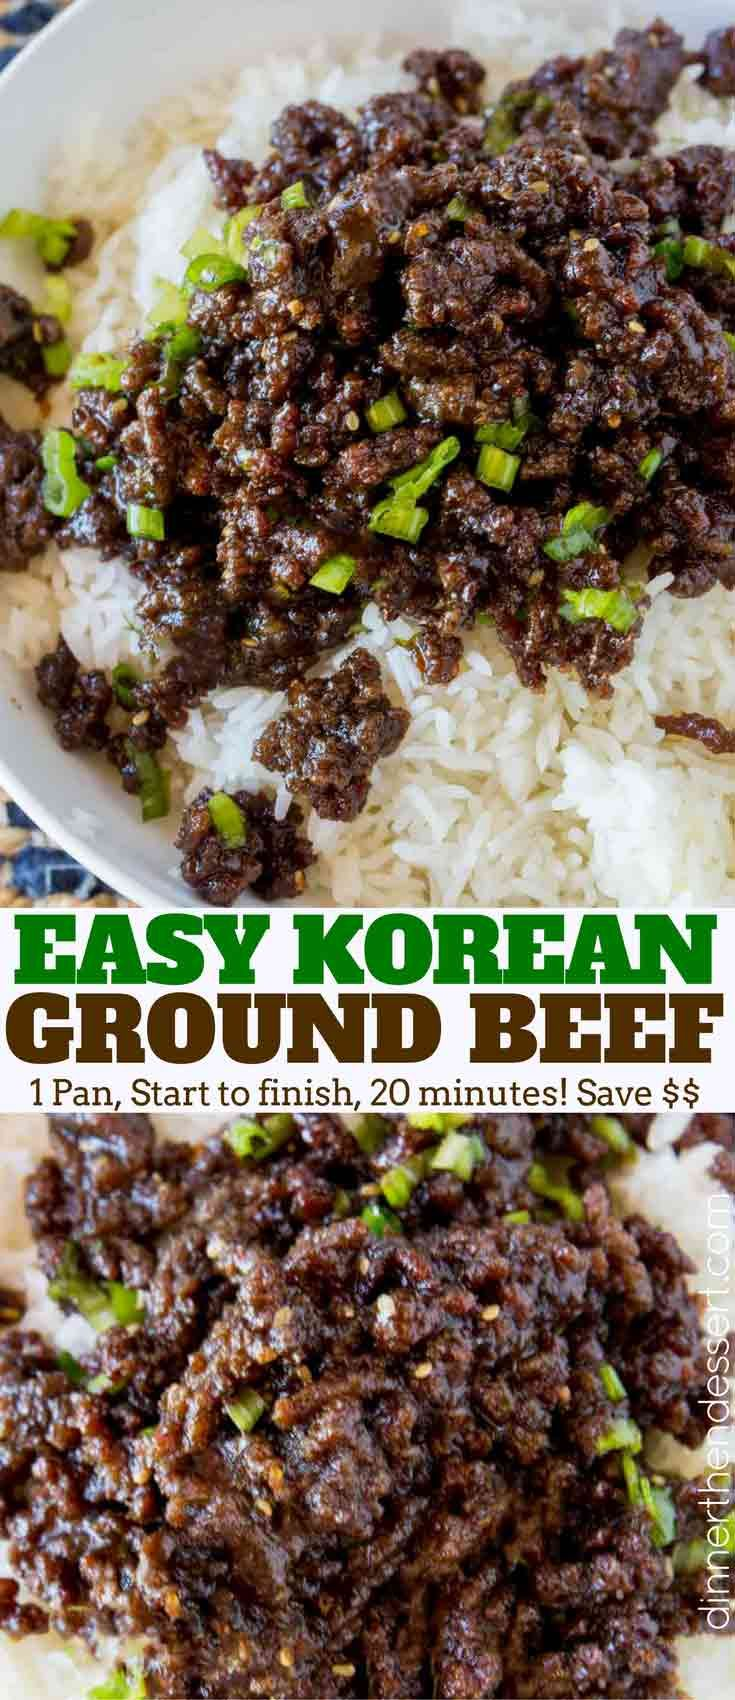 Sweet And Spicy Korean Ground Beef With All The Flavors Of Your Favorite Korean Bbq But For A Third Of The Cost An Beef Recipes Easy Recipes Korean Ground Beef